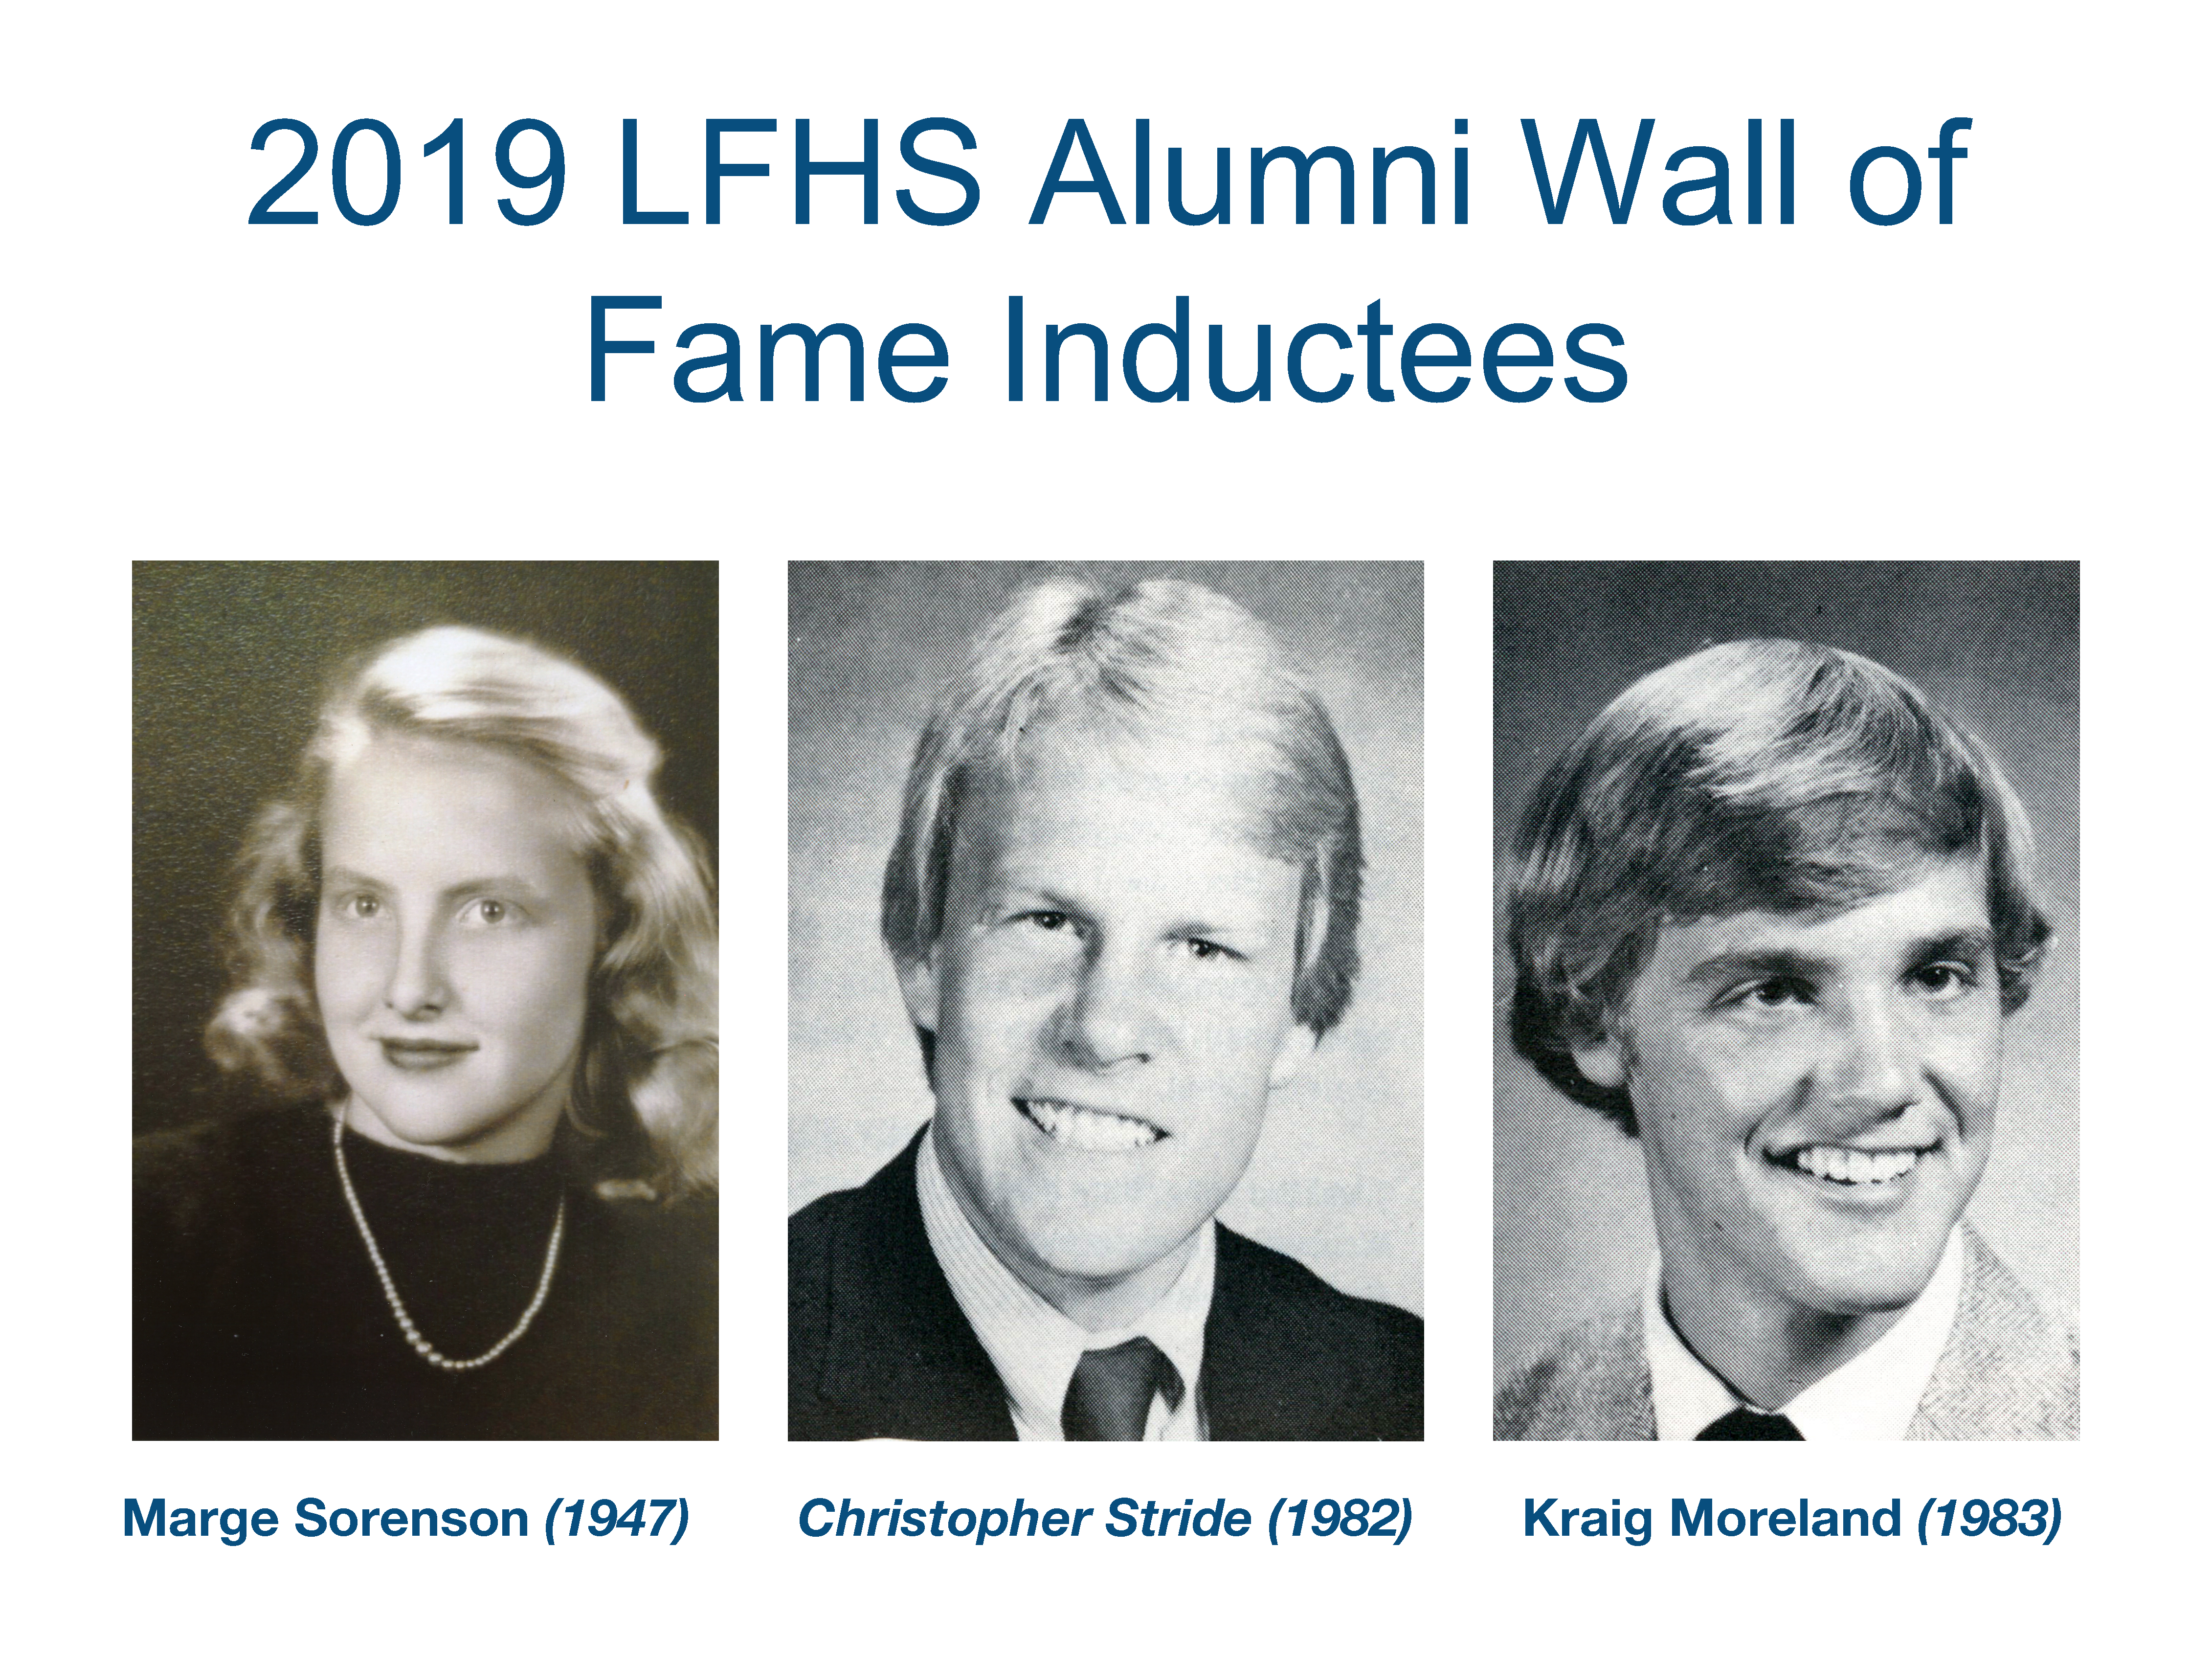 Wall of Fame Inductees 2019